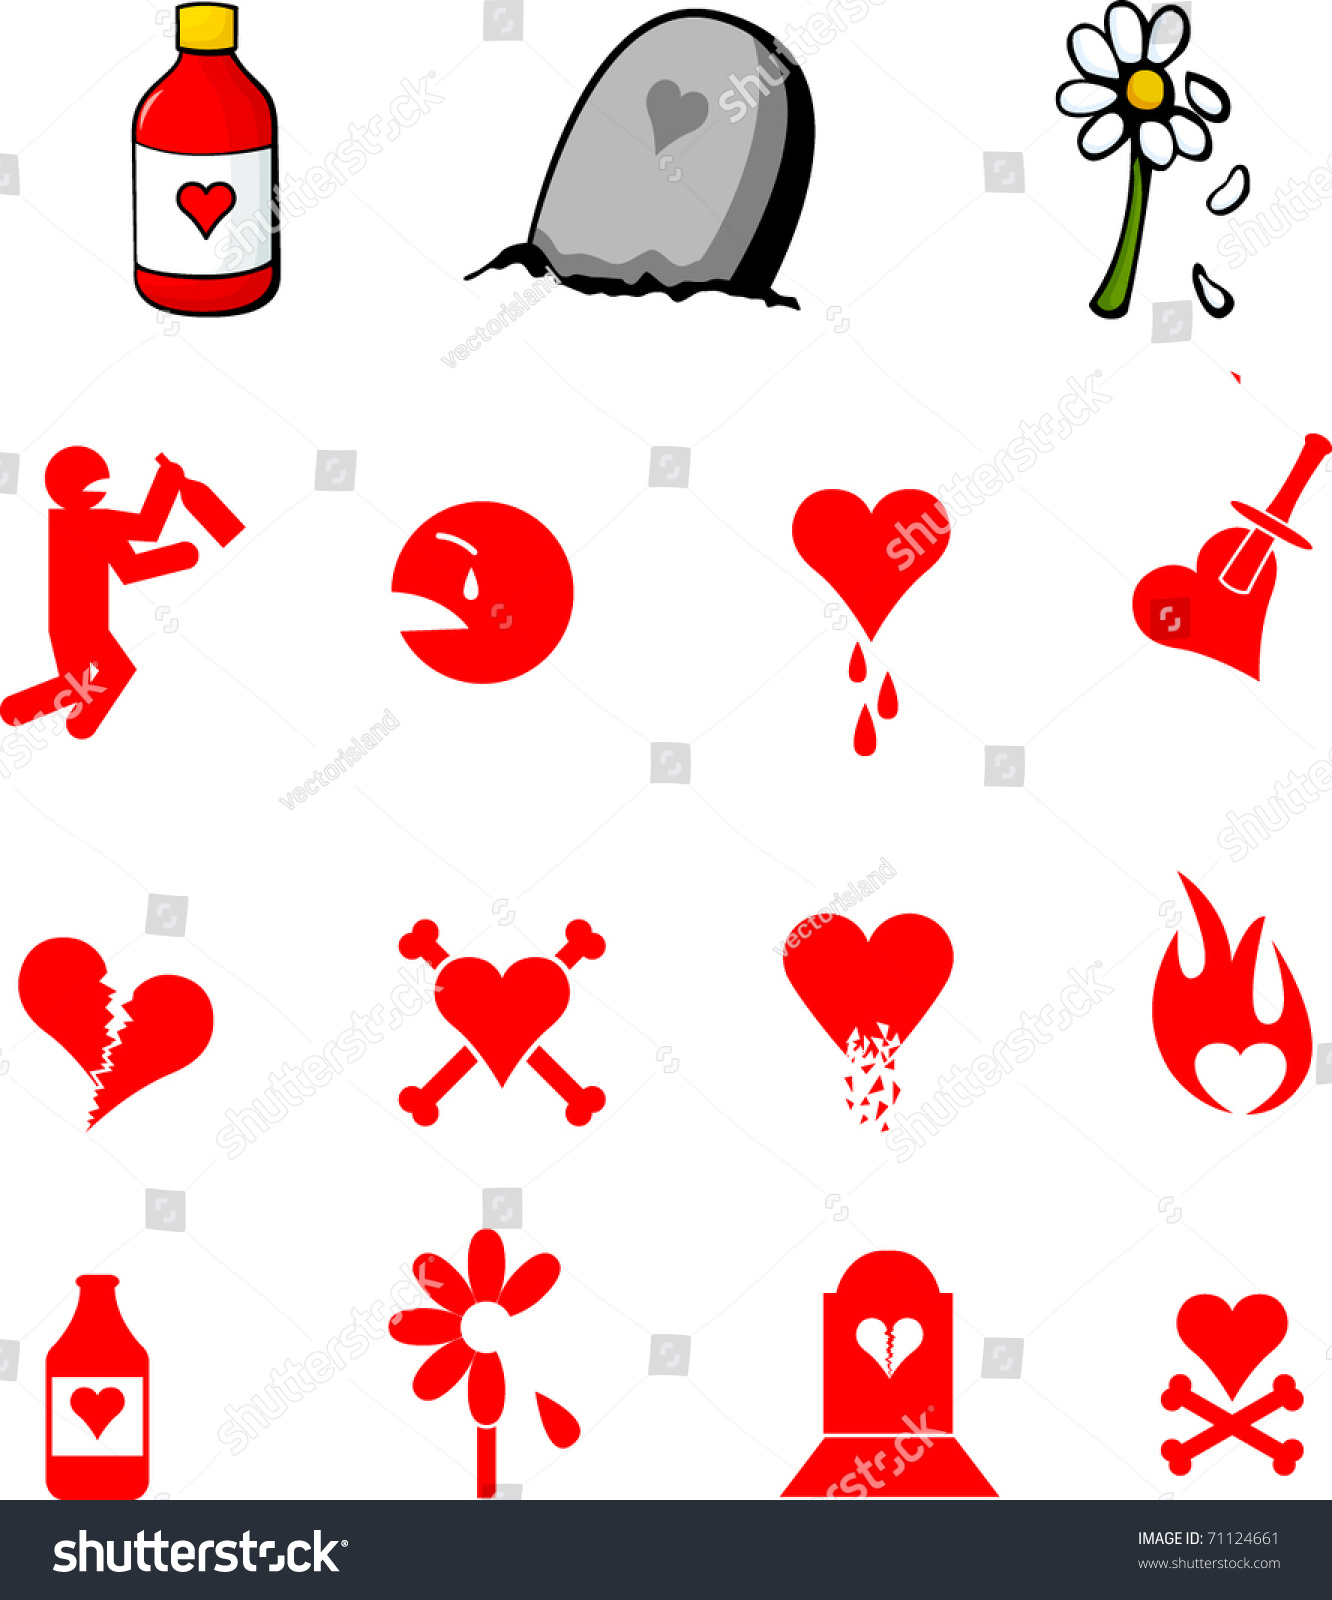 Love Sadness Depression Illustrations Symbols Set Stock ...